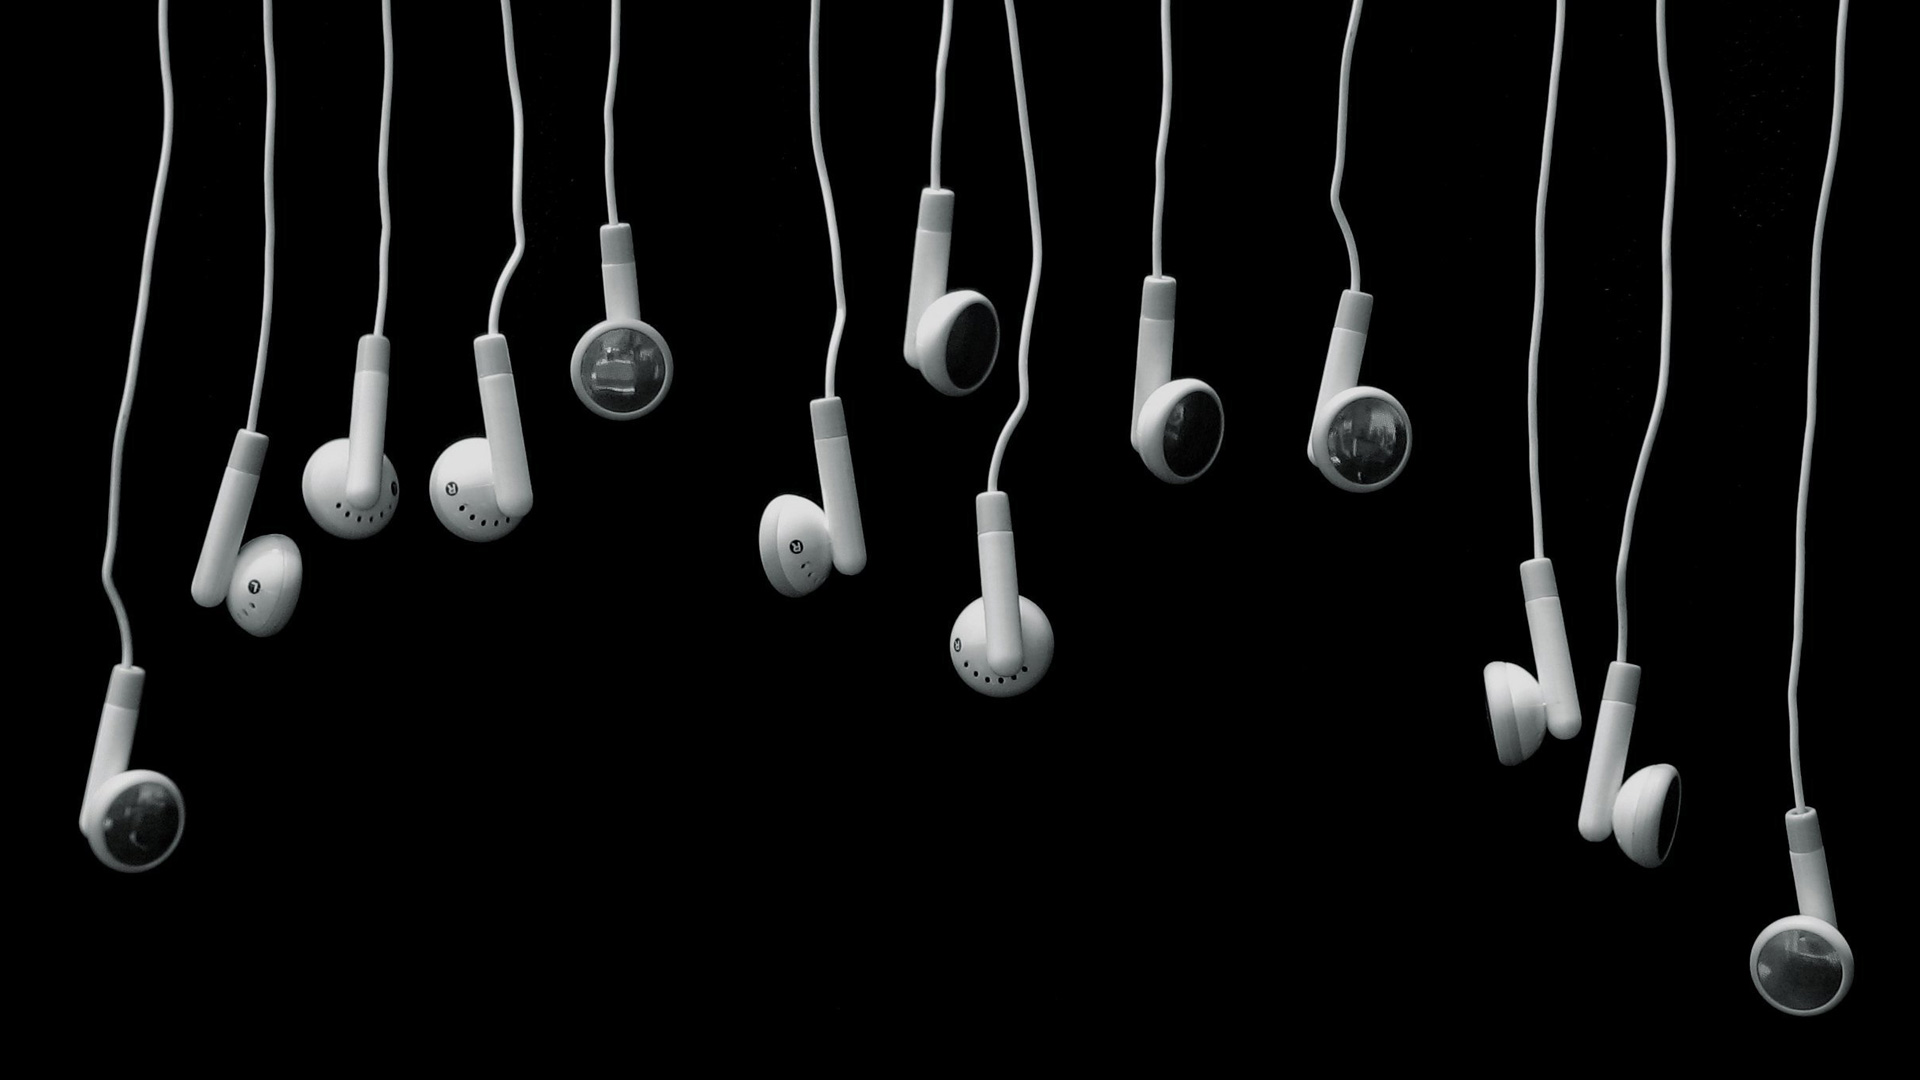 Download-Earphone-Photo-1920x1080-px-KB-wallpaper-wpc9004396